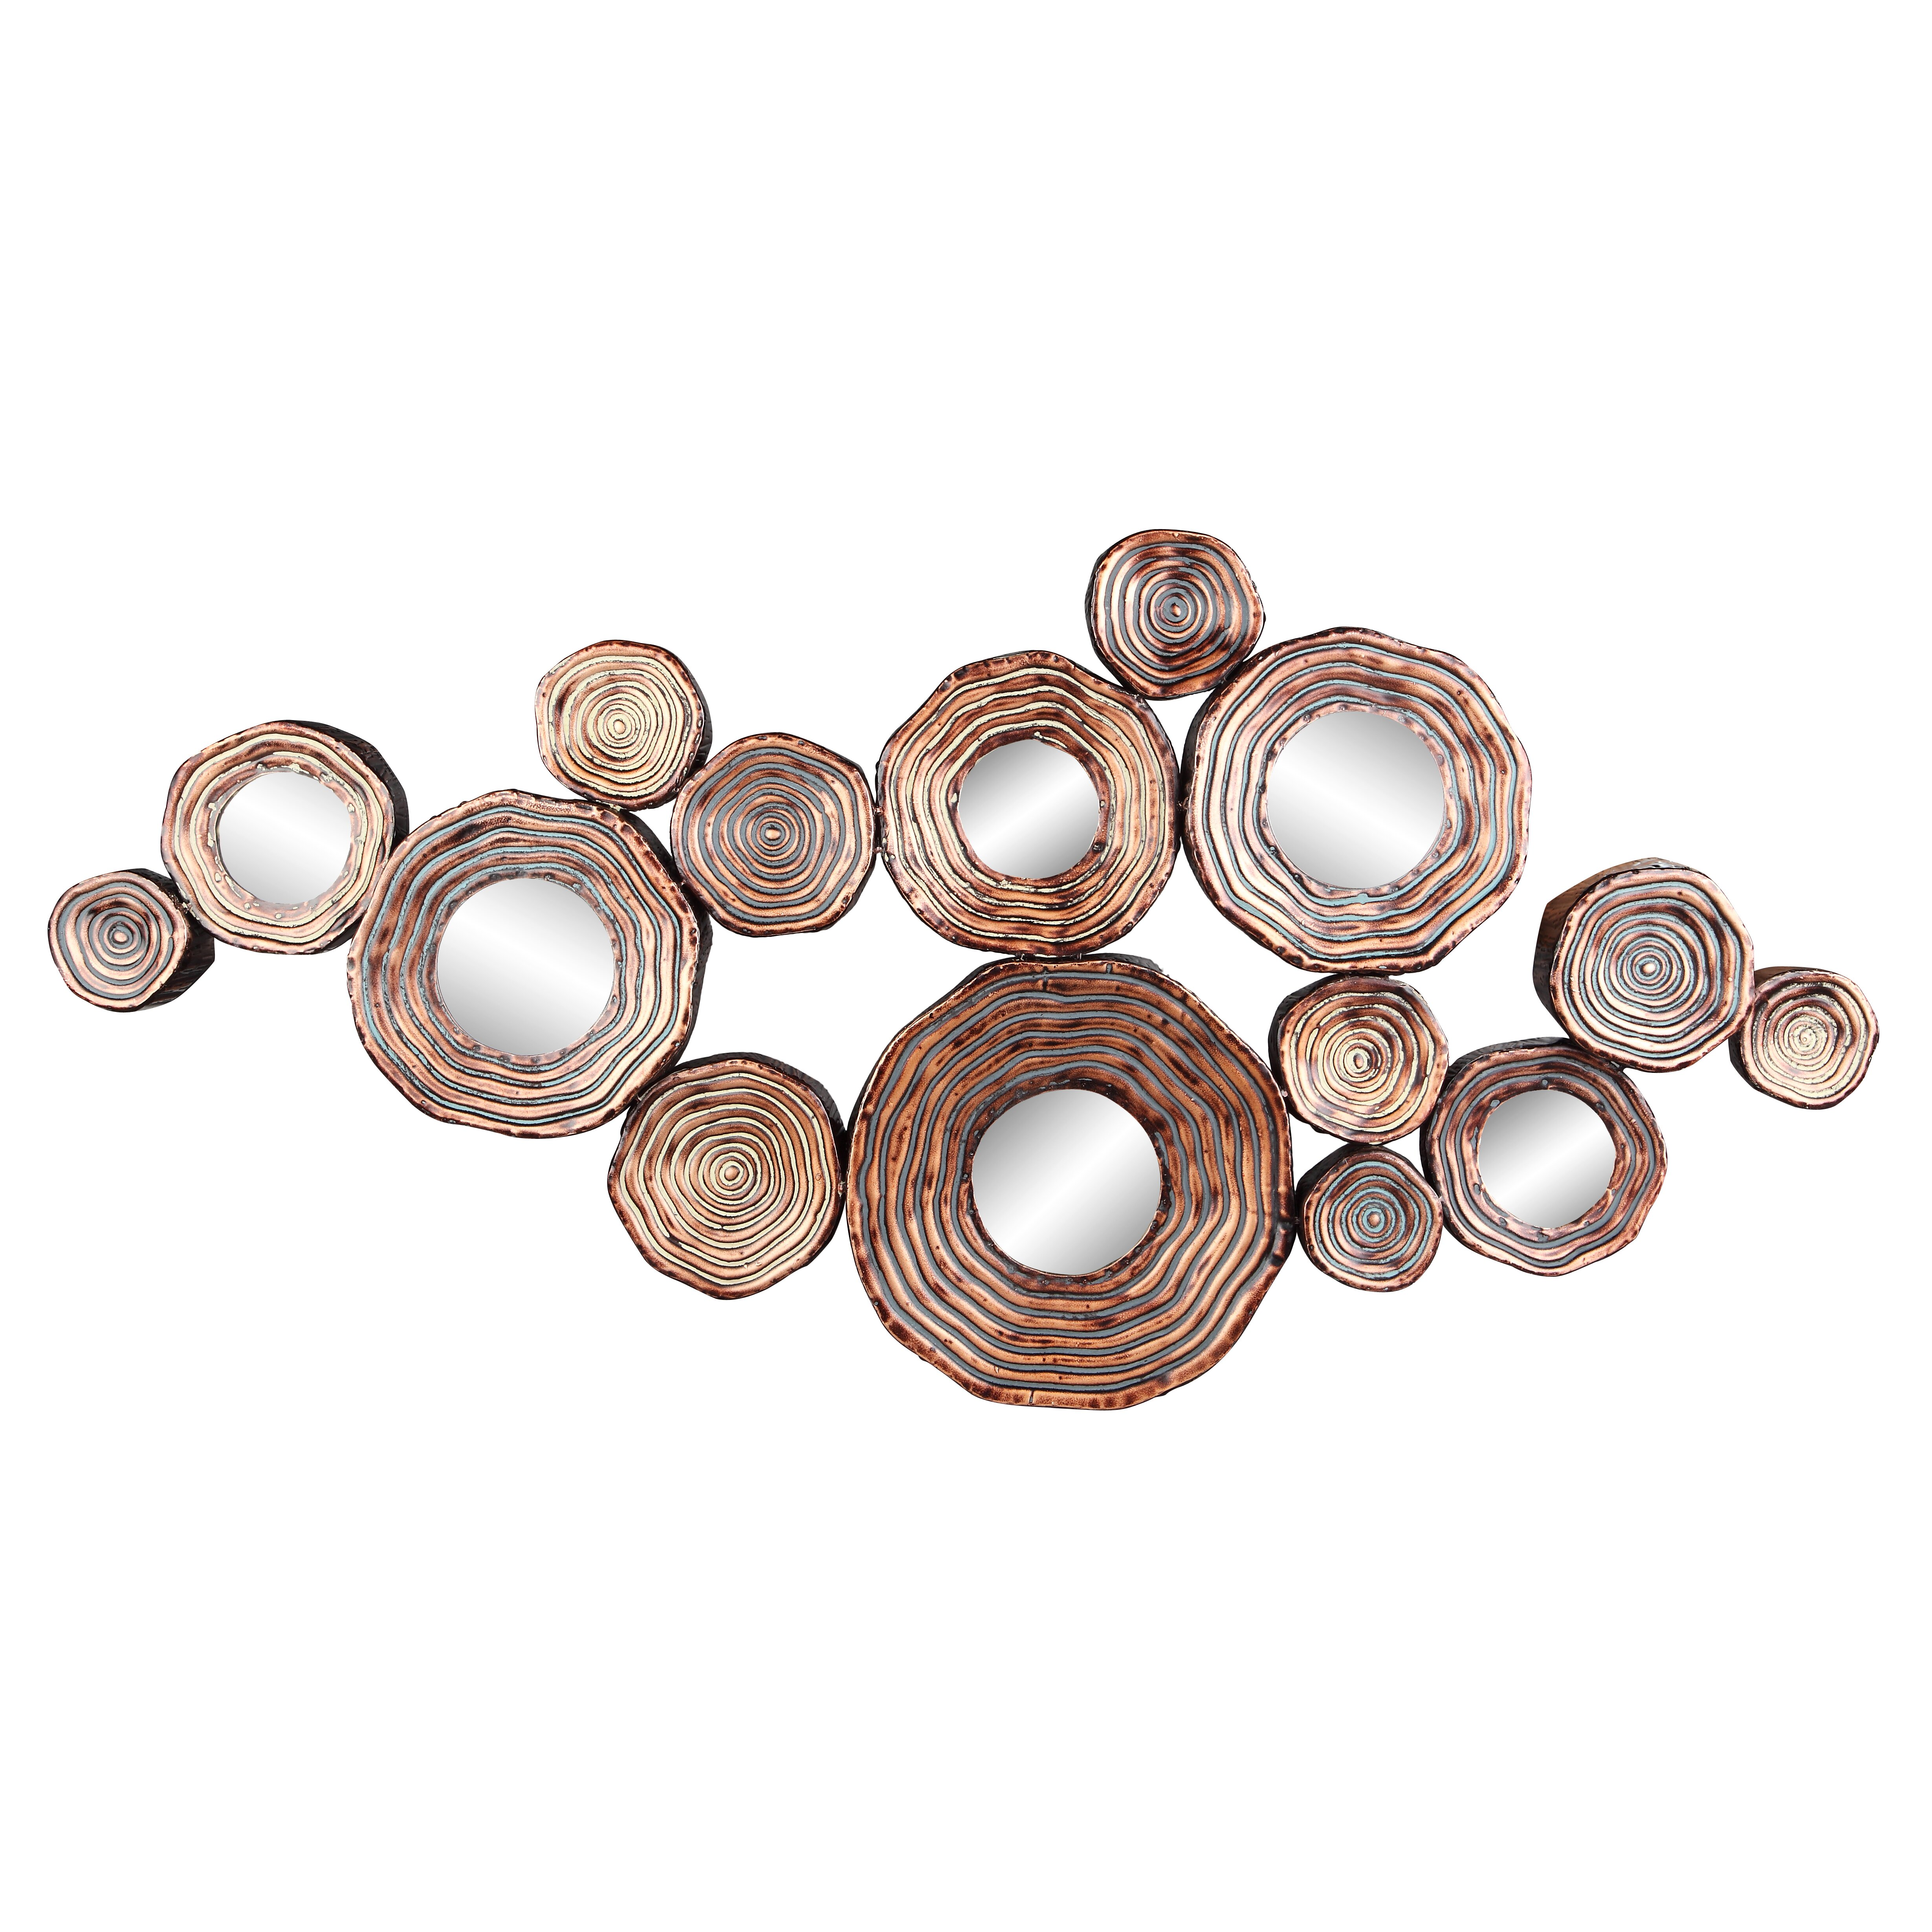 Trent austin design circle cluster wall decor reviews for Circle wall art